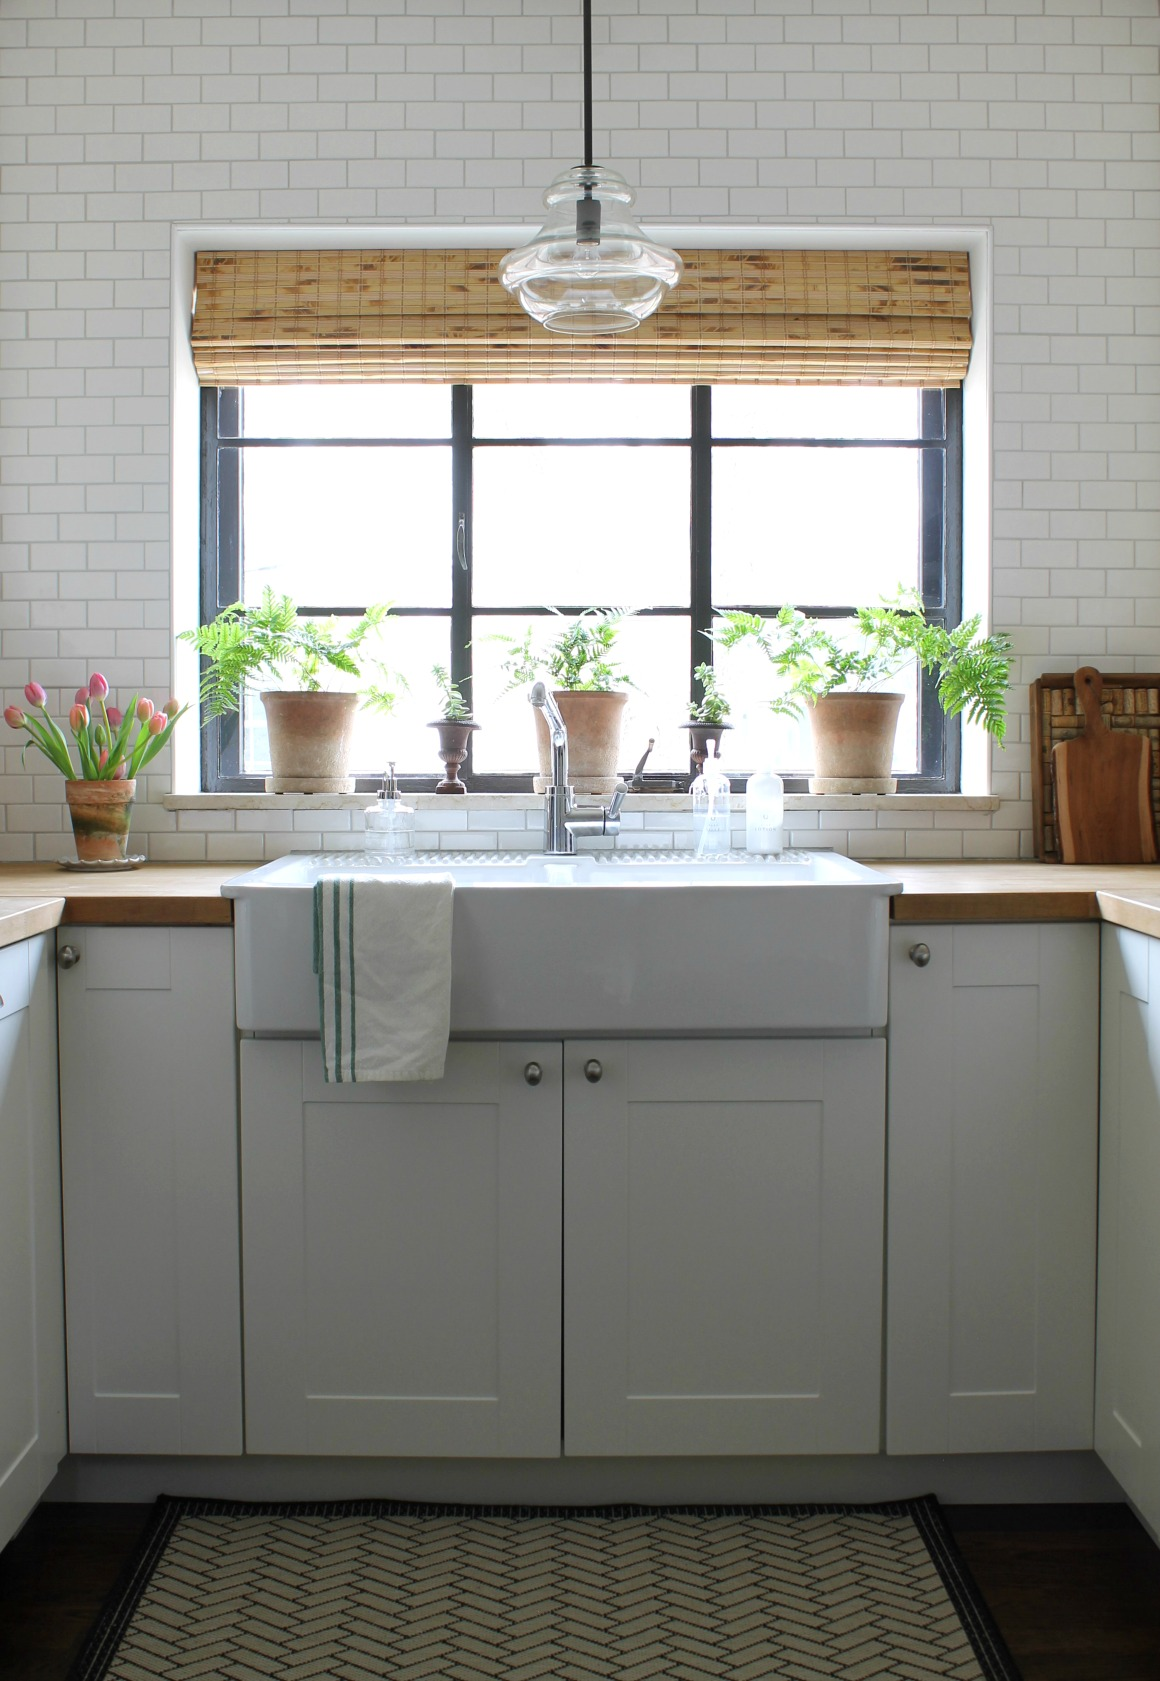 Small Space Living Series- A Look Behind the Scenes